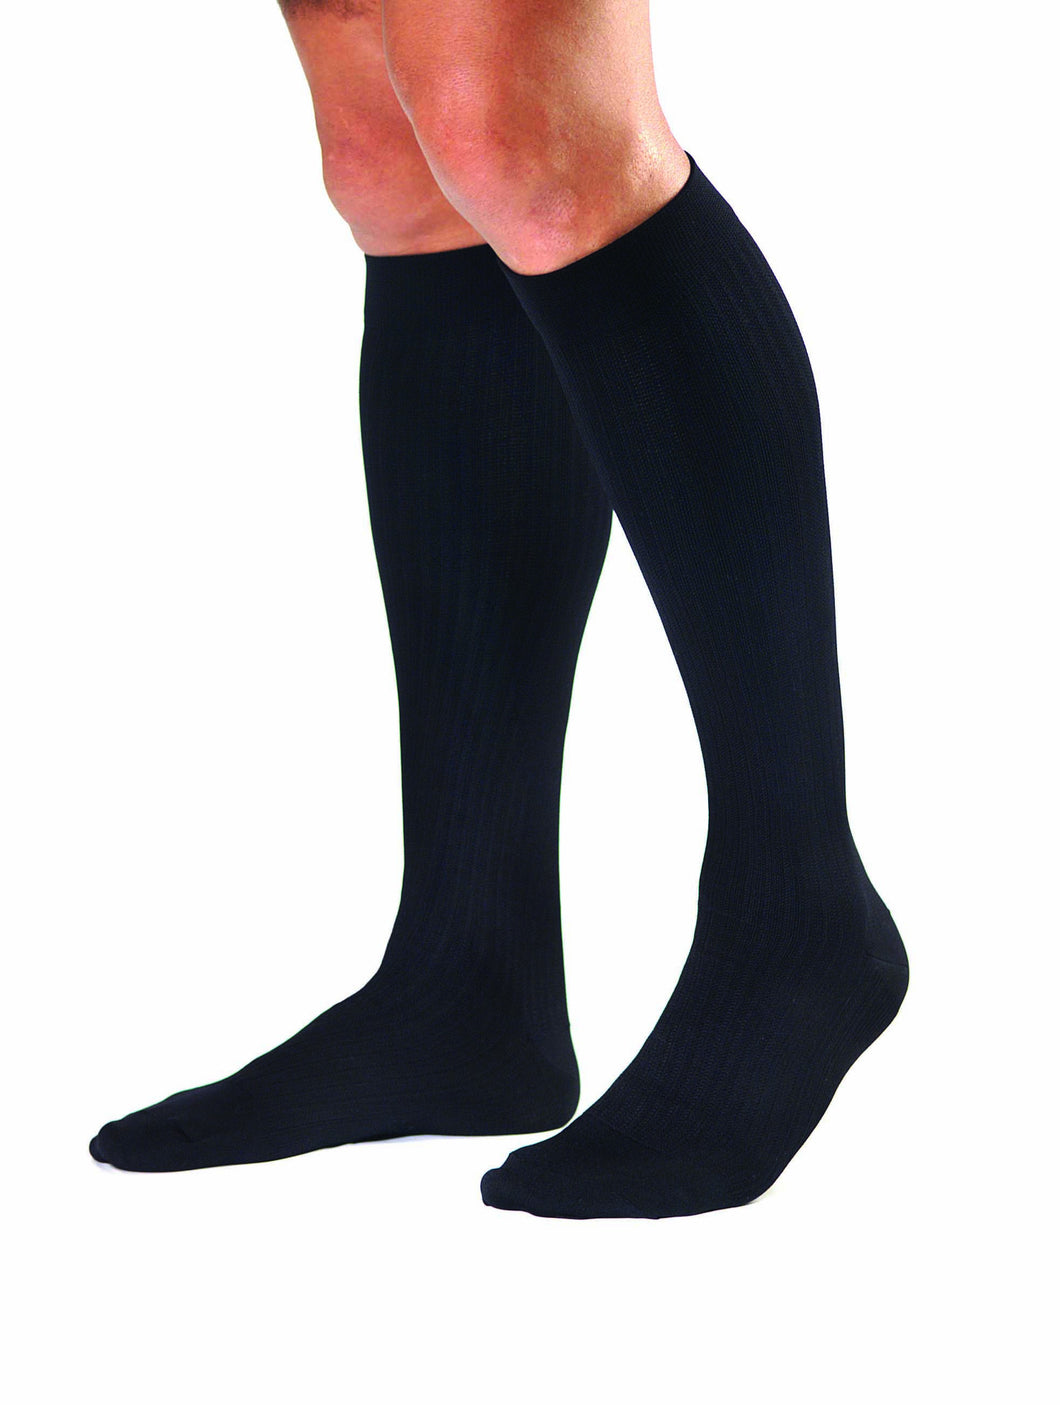 Jobst Men's Dress | Knee High Socks | Closed Toe | 8-15 mmHg